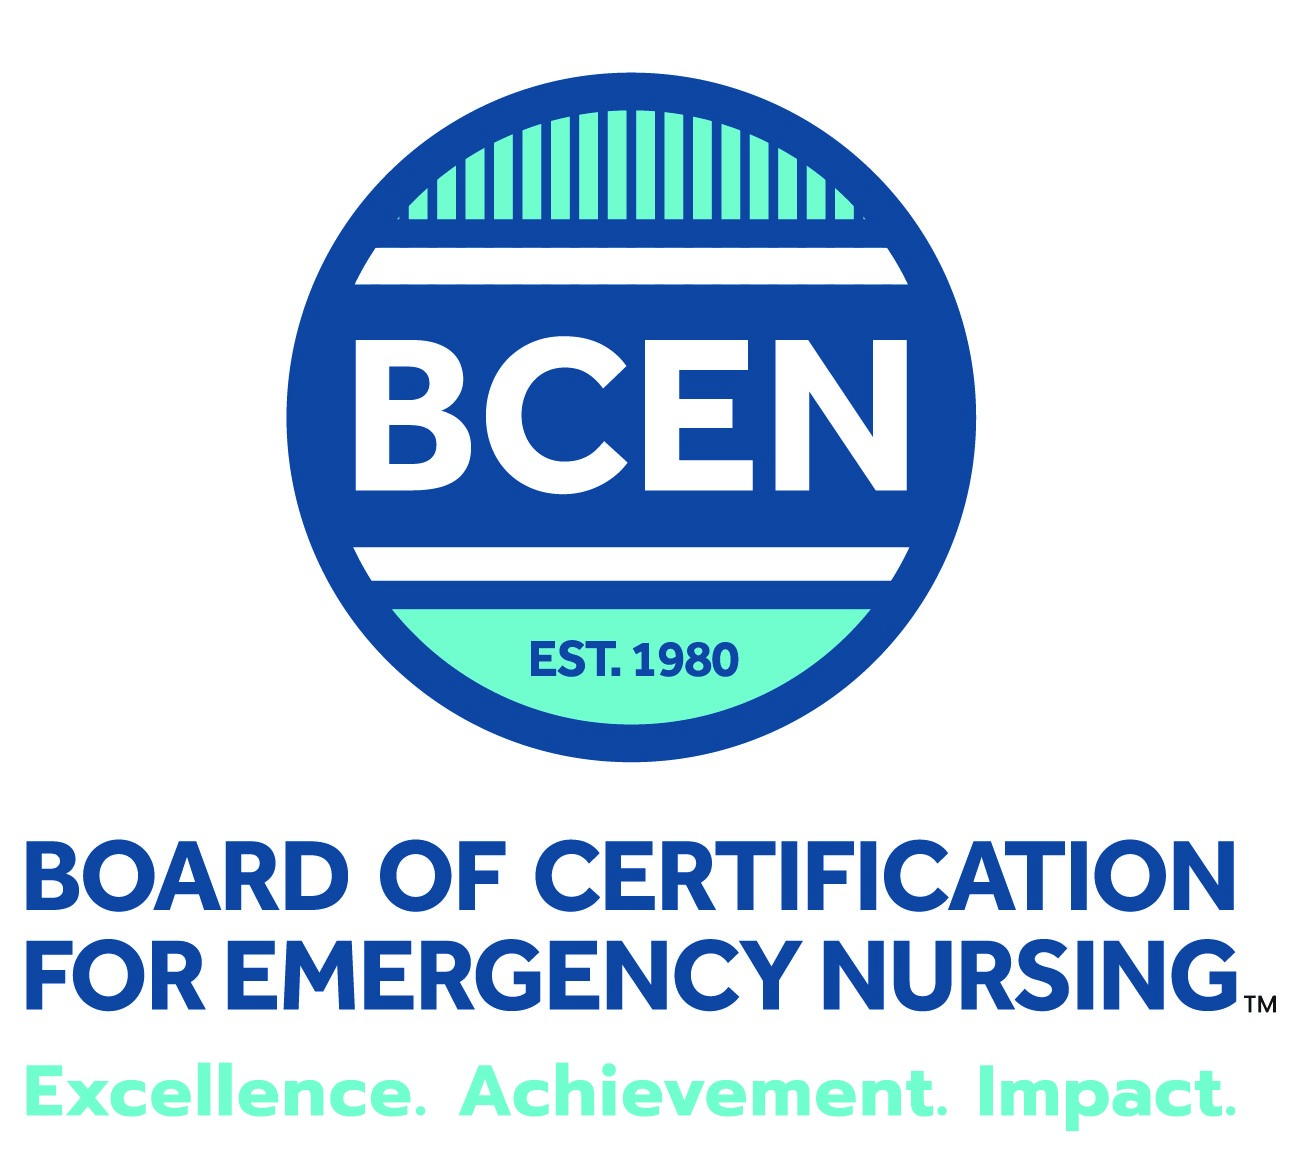 Board Of Certification For Emergency Nursing Debuts New Brand